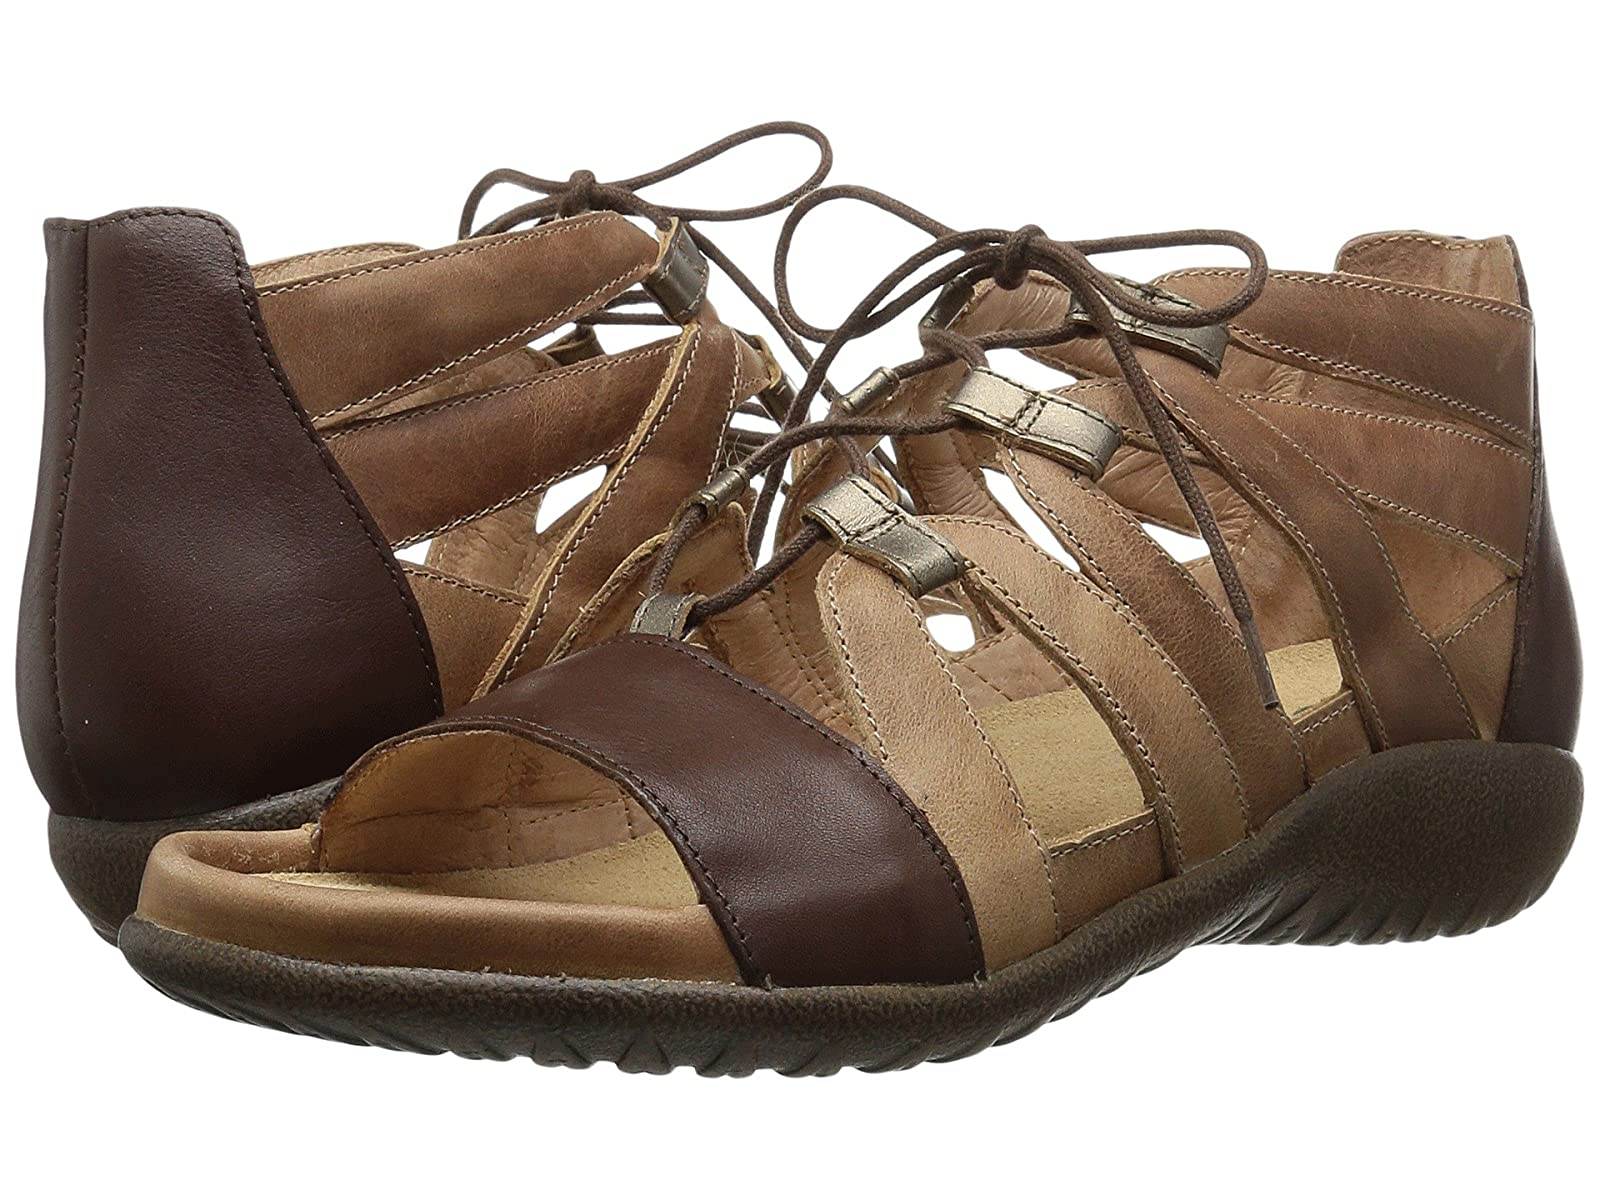 Naot SeloAtmospheric grades have affordable shoes